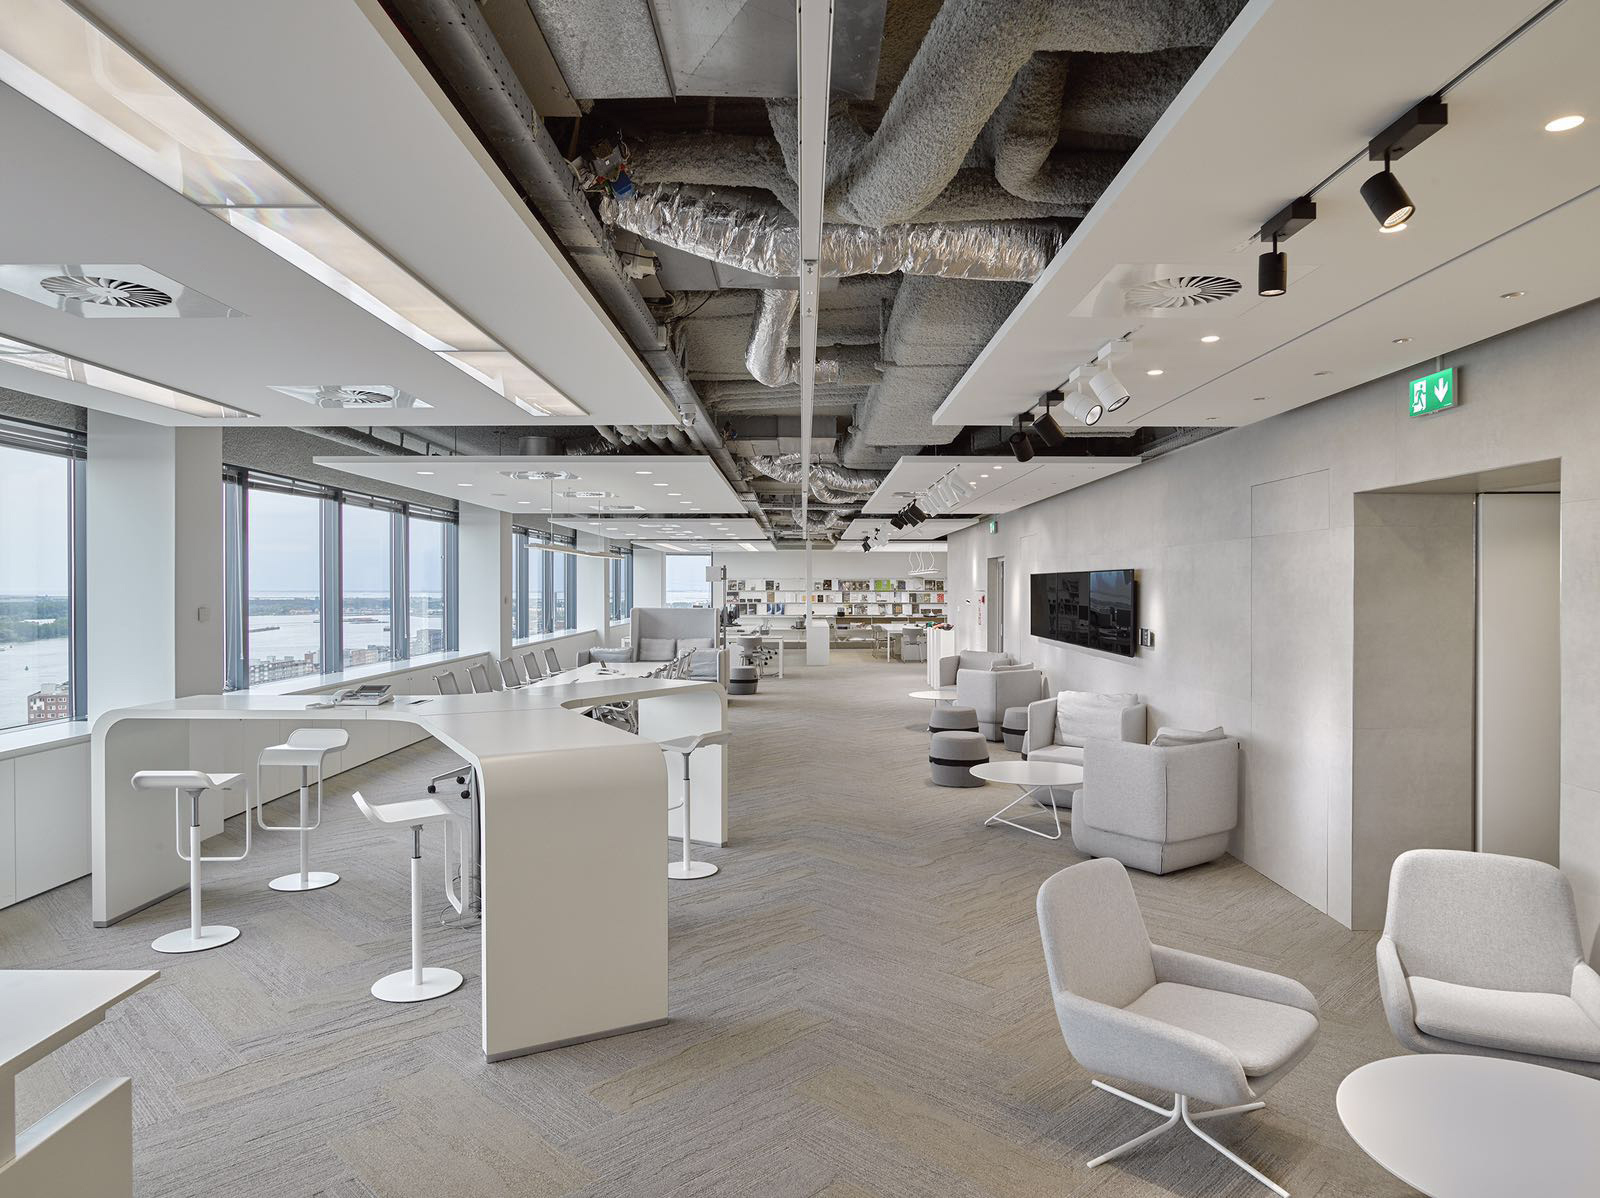 product quietceiling office ceilings headpic quietstone quiet panels acoustic ceiling